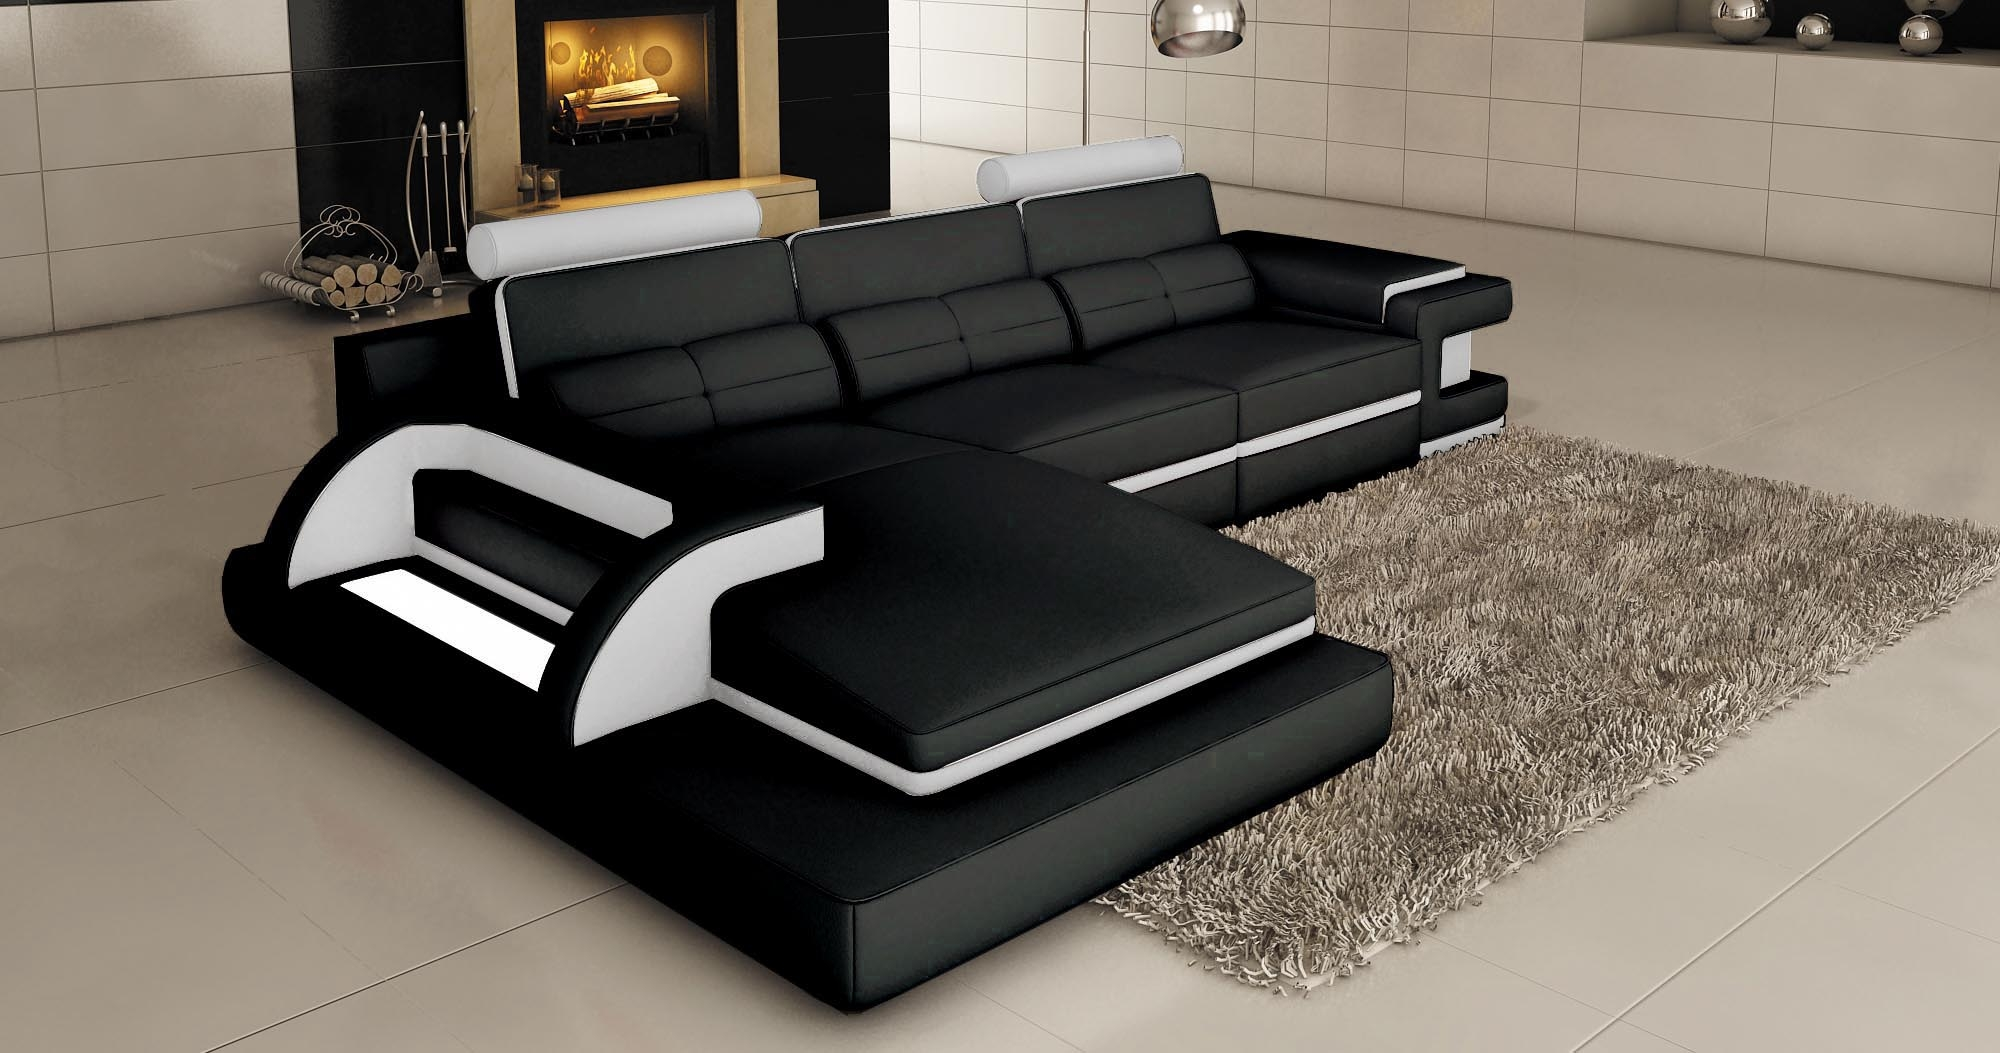 Canap d angle cuir noir royal sofa id e de canap et for Meuble de canape